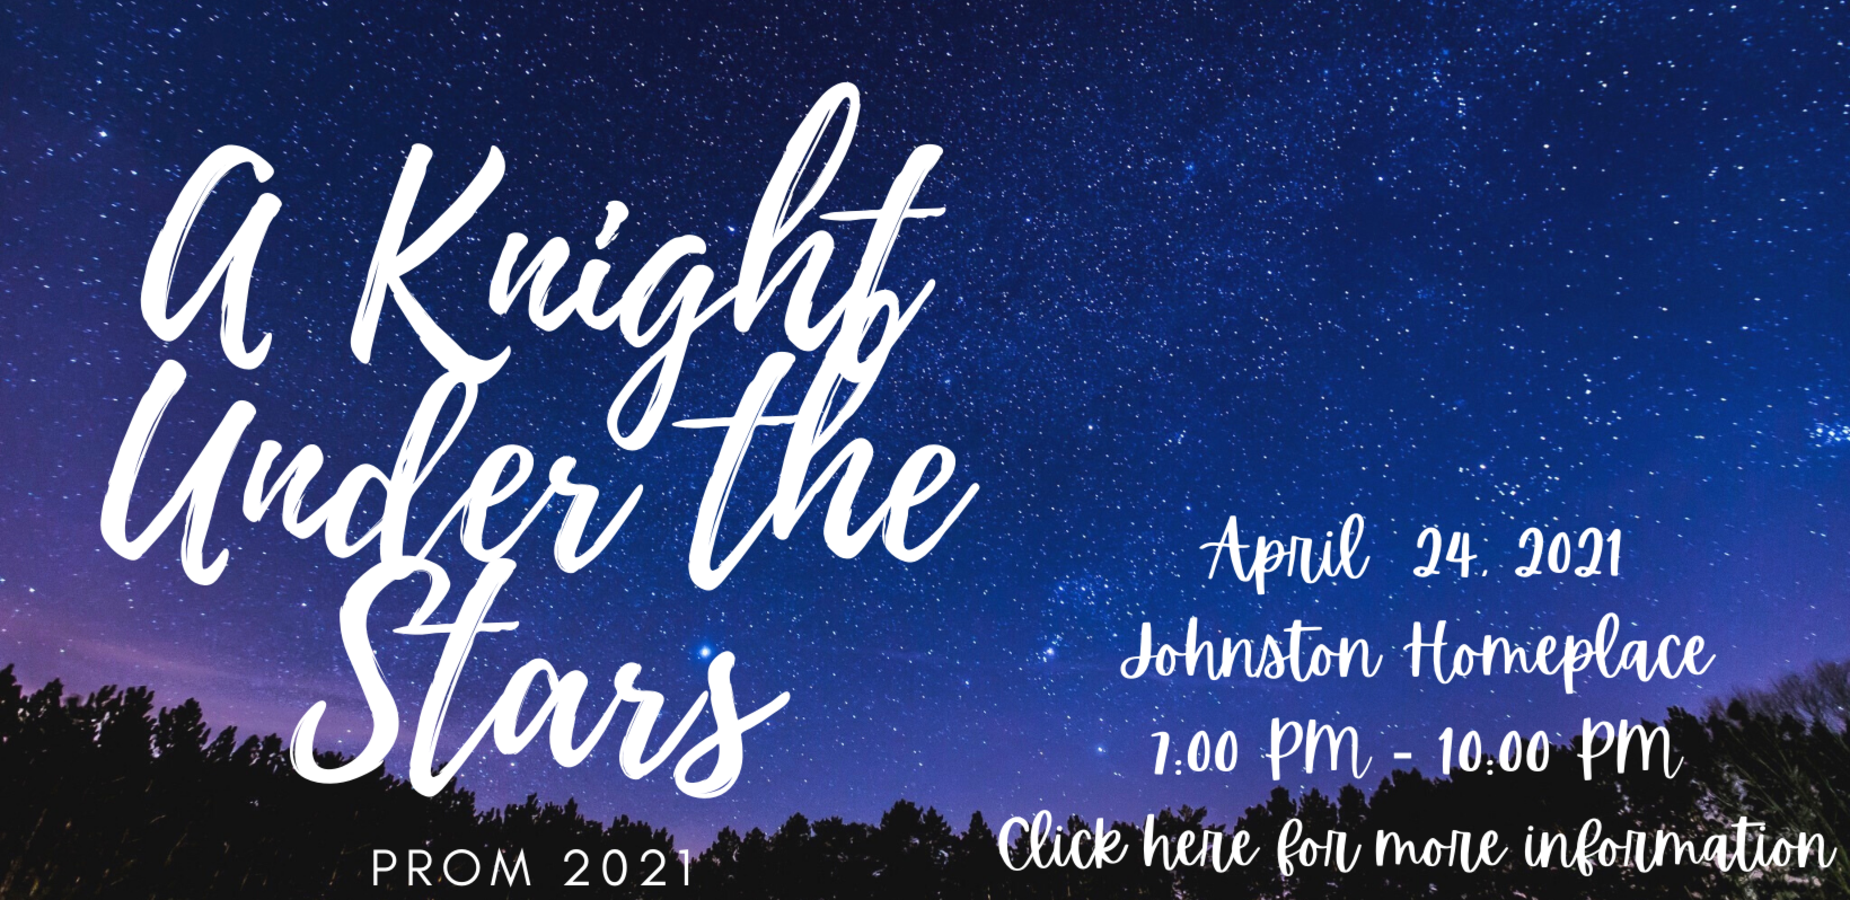 Prom 2021: A Knight Under the Stars is April 24, 2021 at the Johnston Homeplace from 7:00 PM-10:00 PM